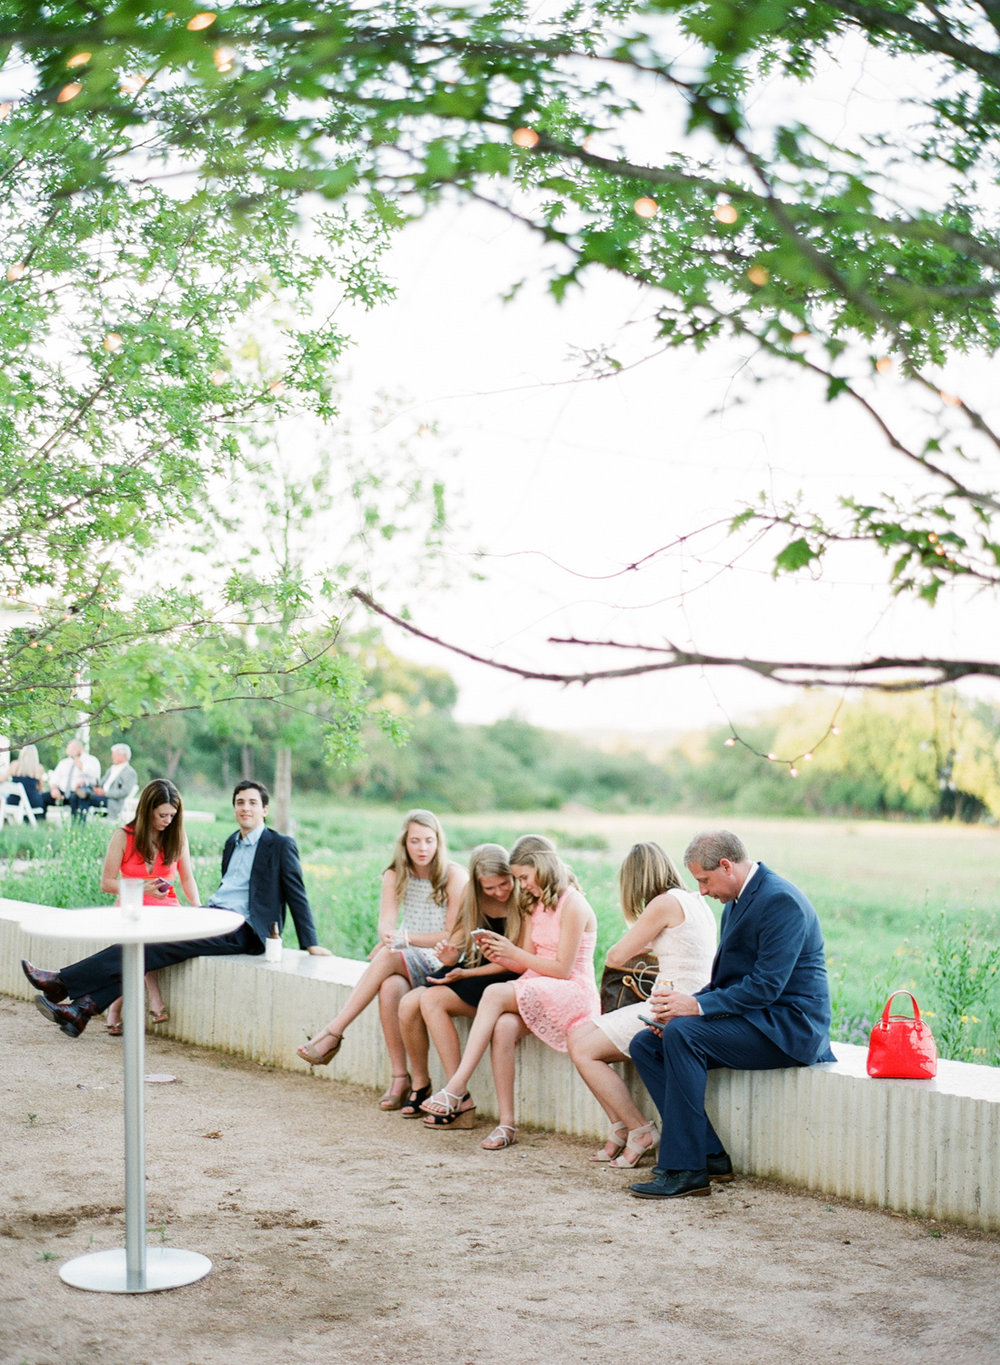 PROSPECT_HOUSE_WEDDING_AUSTIN_TX_BY_MATTHEW_MOORE_PHOTOGRAPHY_00564.jpg